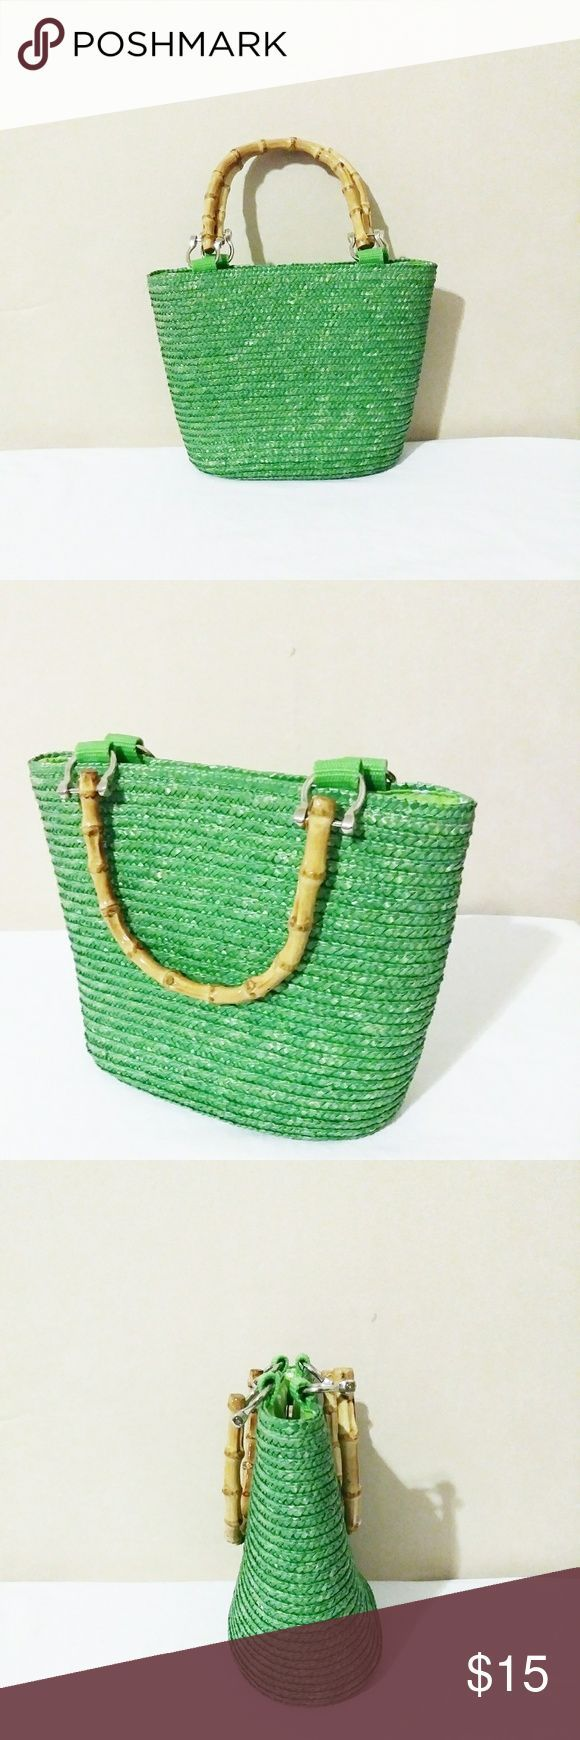 Vintage Lime Green Straw Bamboo Handle Mini Purse NWOT  Adorable Y2K era bright  Vintage Lime Green Straw Bamboo Handle Mini Purse NWOT  Adorable Y2K era bright